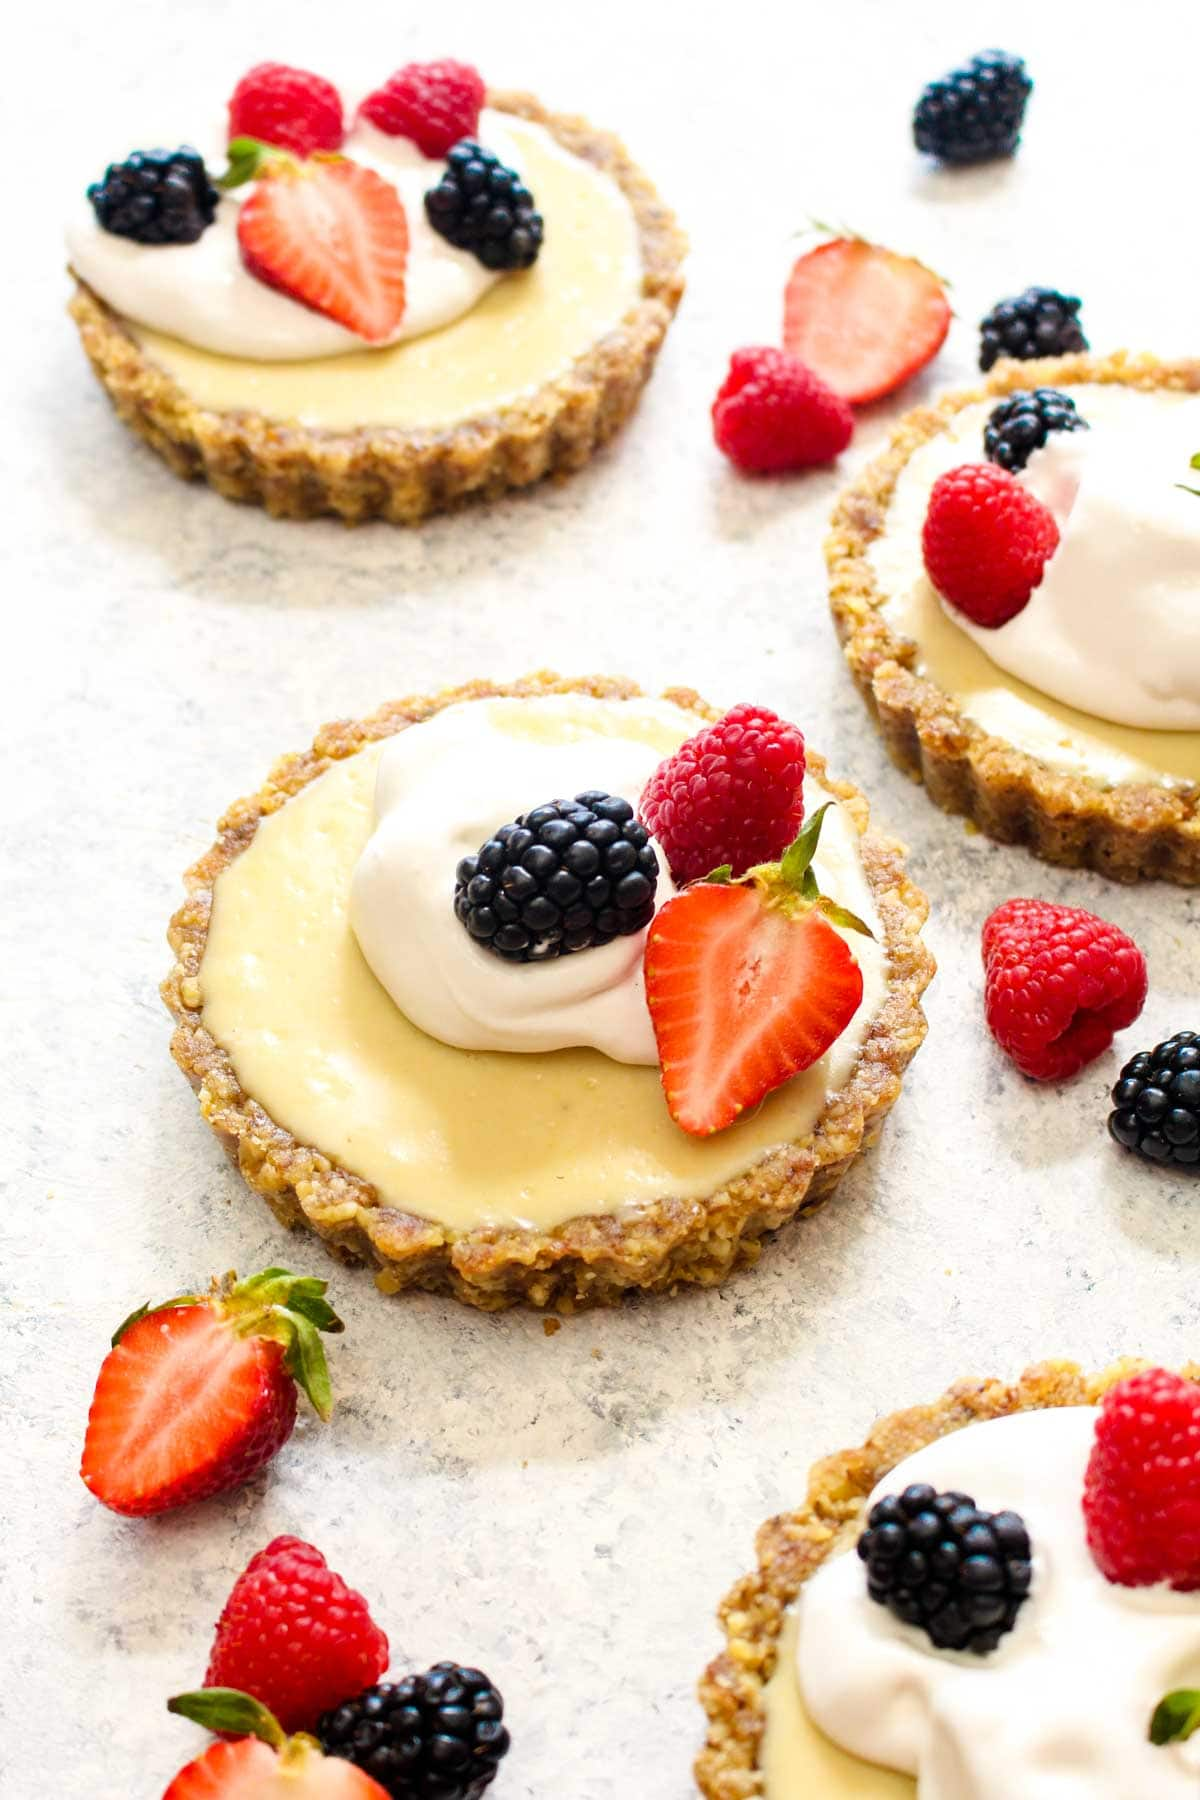 This White Chocolate Lemon Cream Tart is not only a show-stopping recipe, it is an easy 7 ingredient no bake dessert! Using natural sweeteners and whole foods, this tart is healthy, vegan, paleo, and grain free! Everyone will want to take a bite out of this lusciously creamy treat. | CatchingSeeds.com